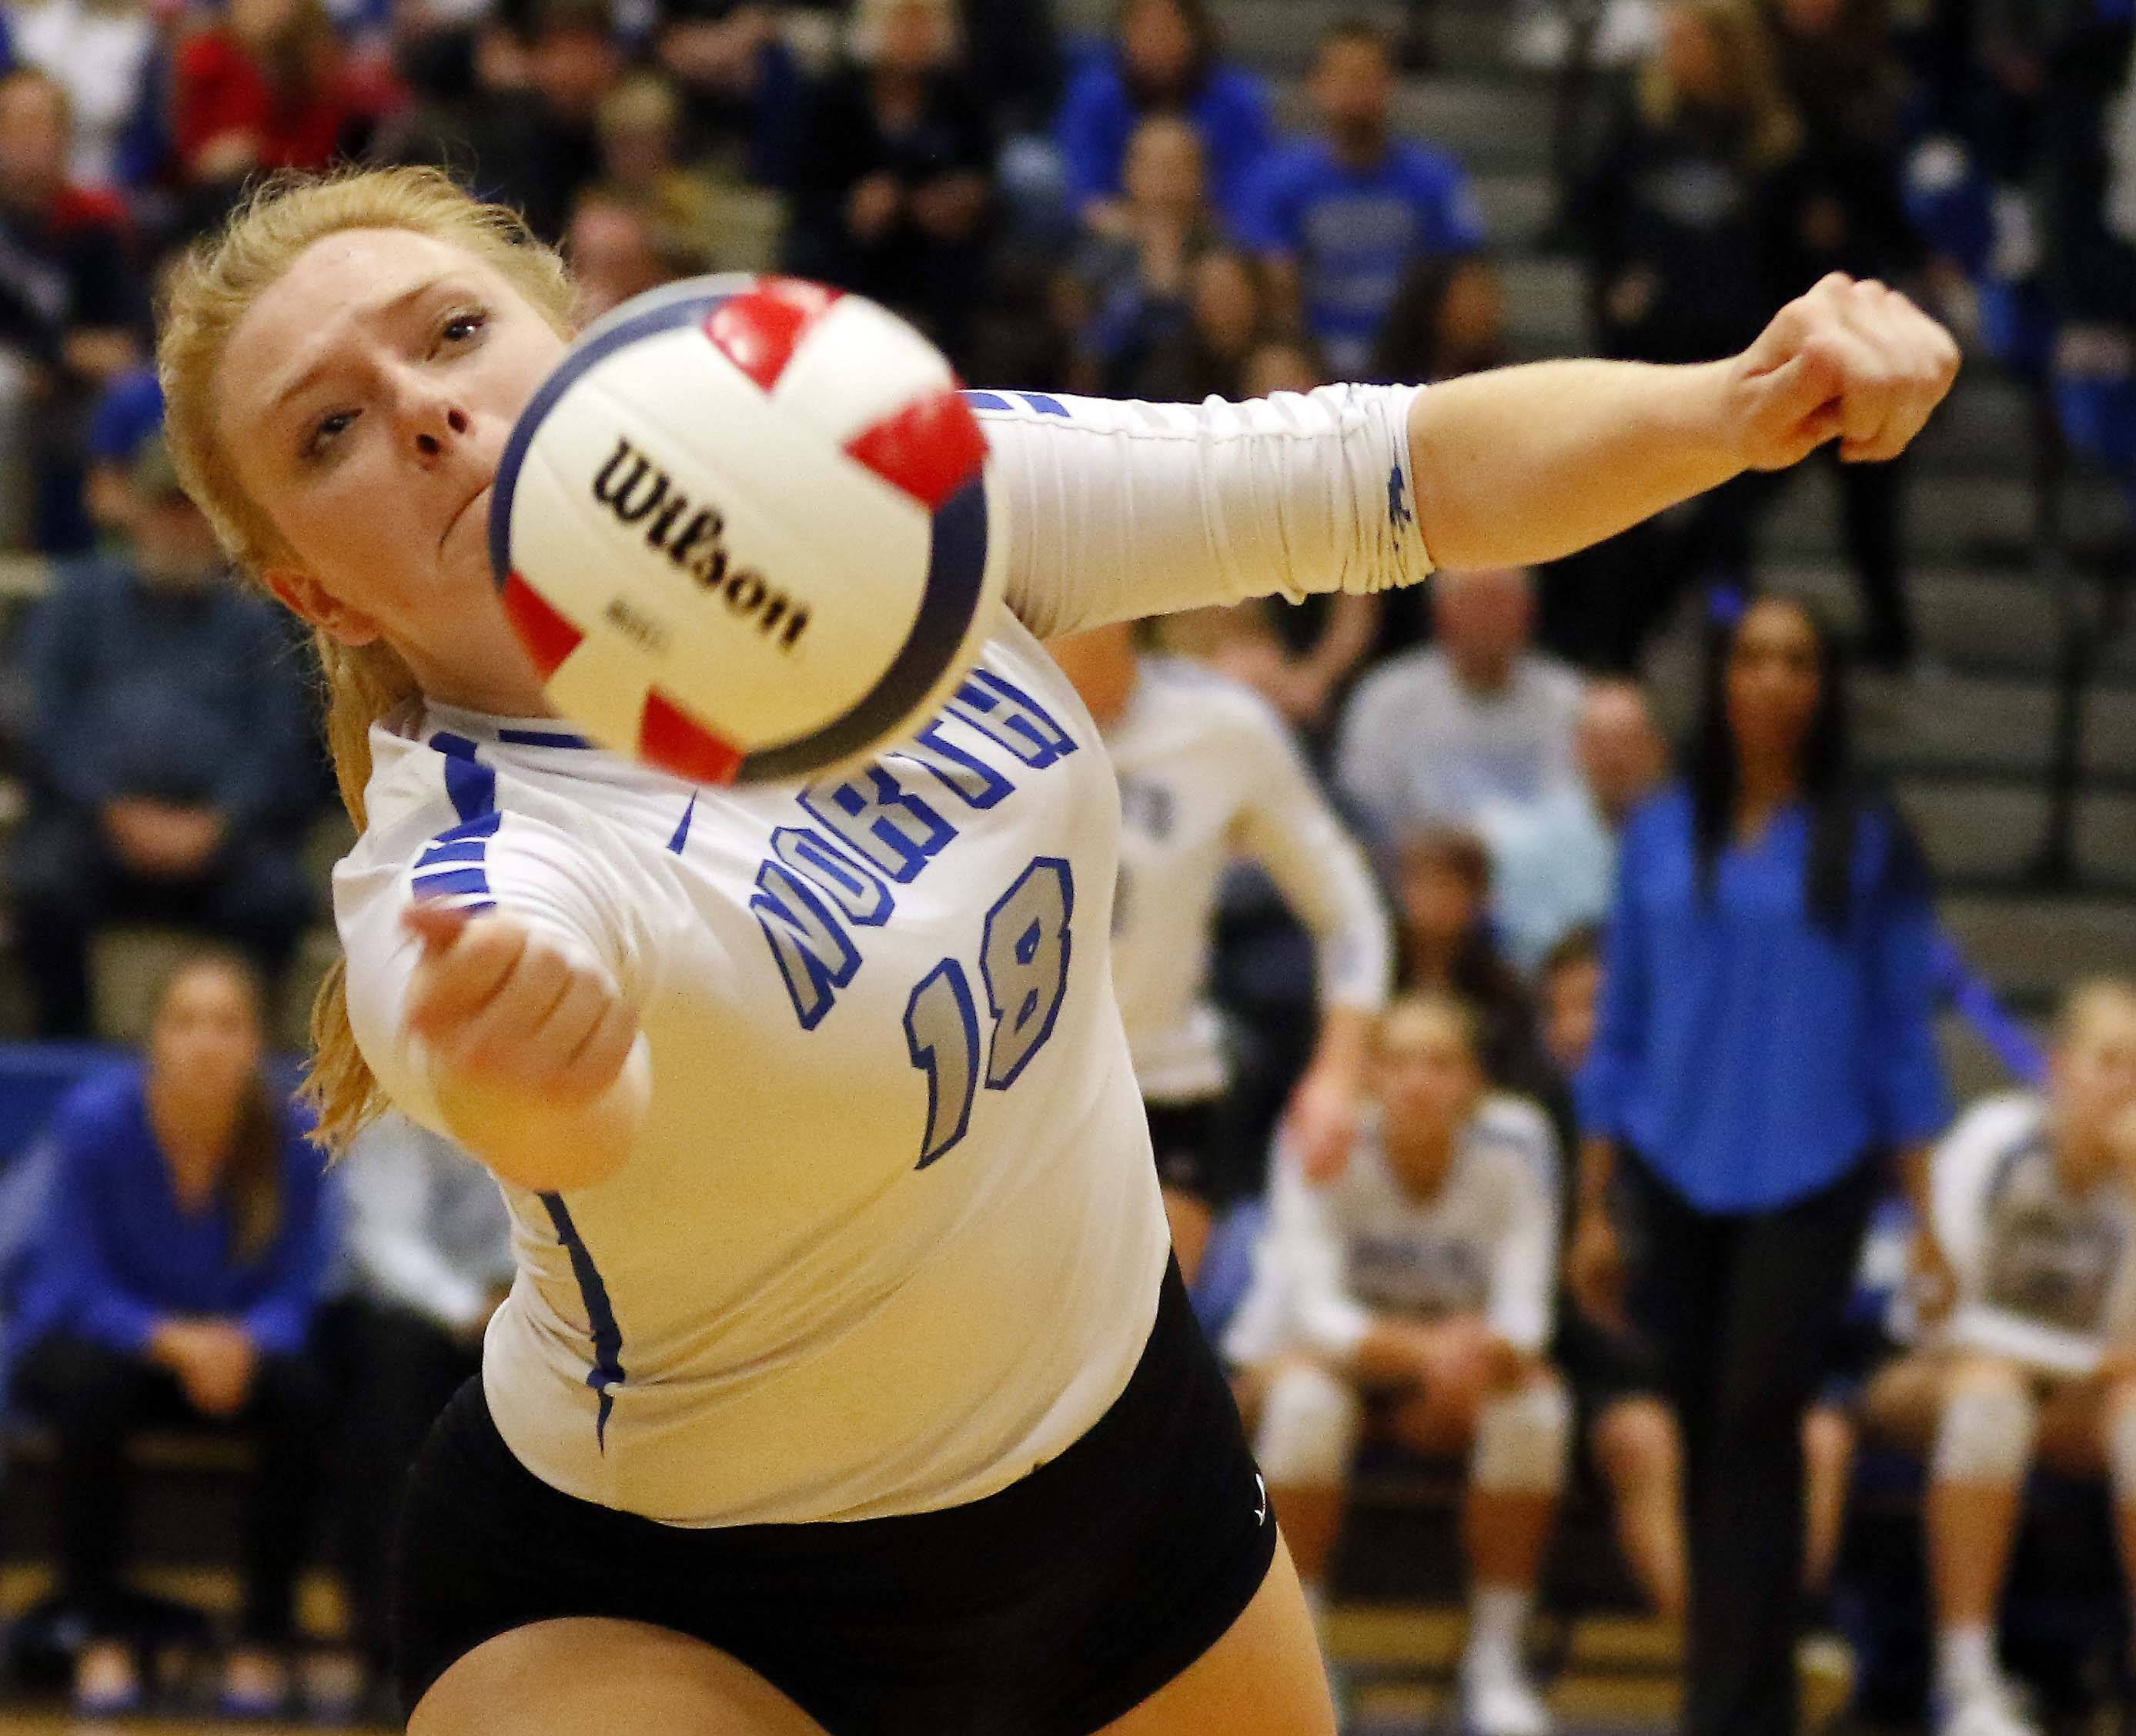 St. Charles North's Cassandra Johnson (18) Friday in the Geneva volleyball supersectional.